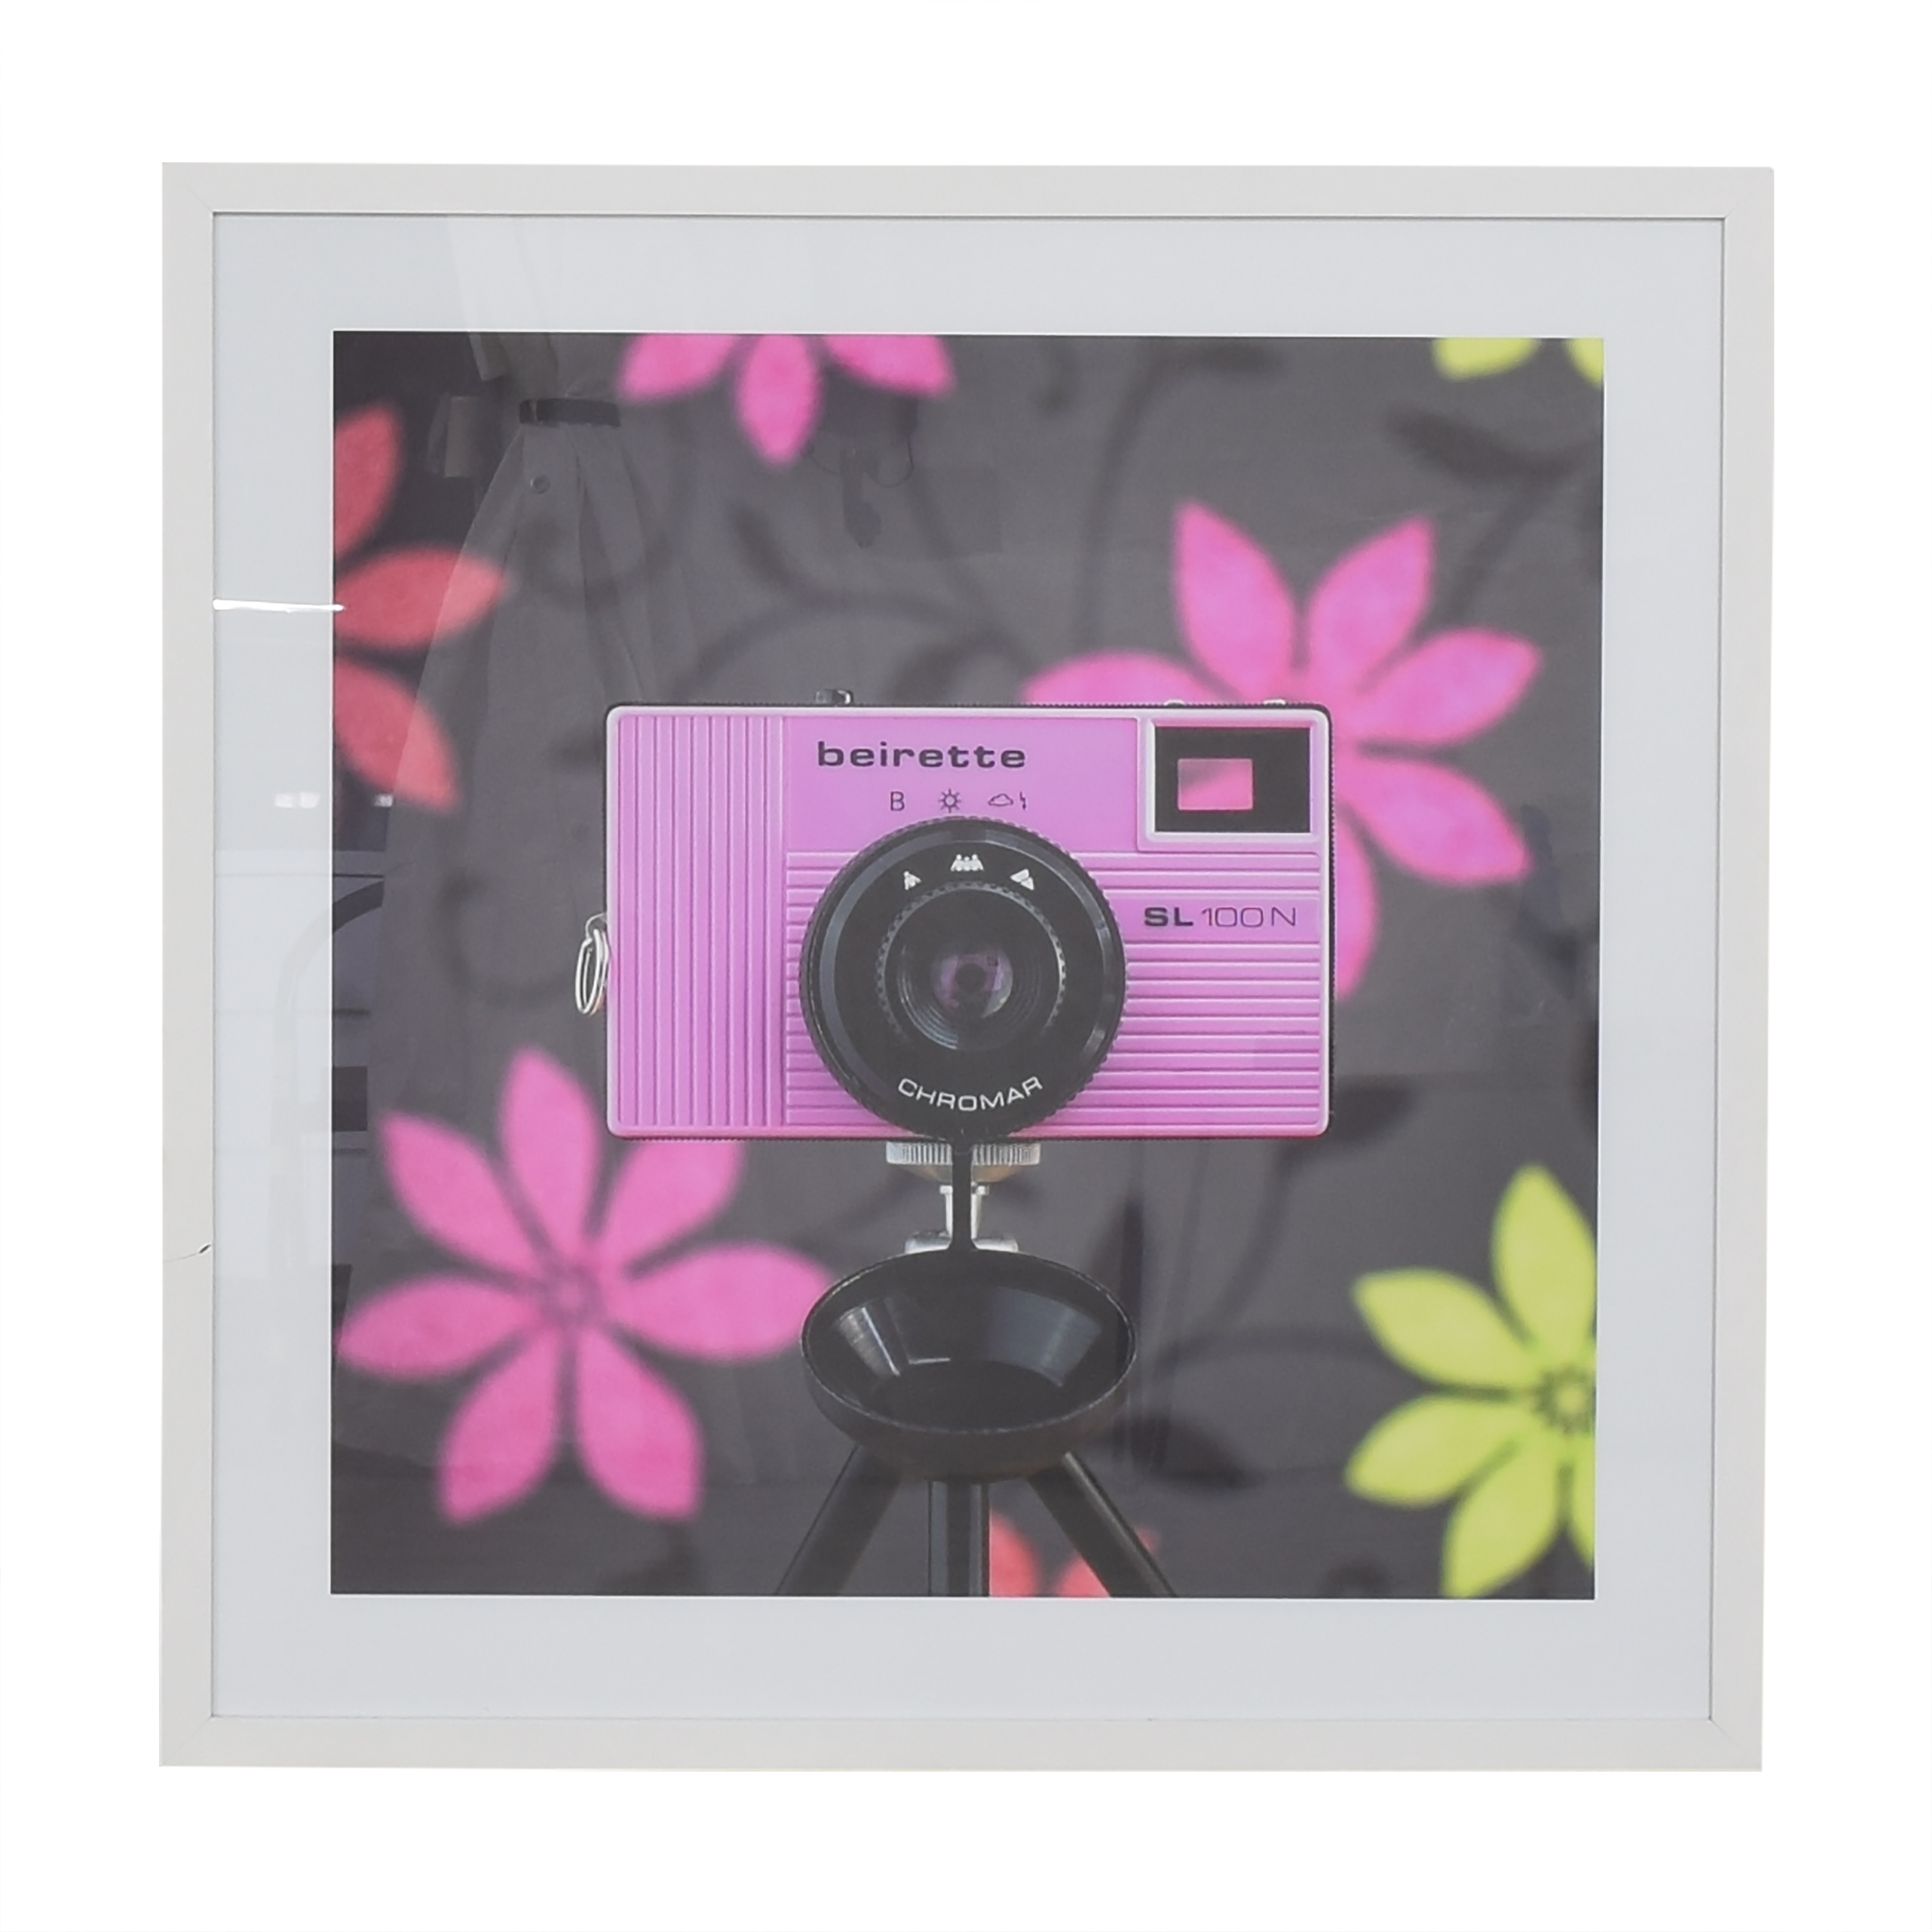 Flynn Newton CameraSelfie #34 Framed Wall Art ma